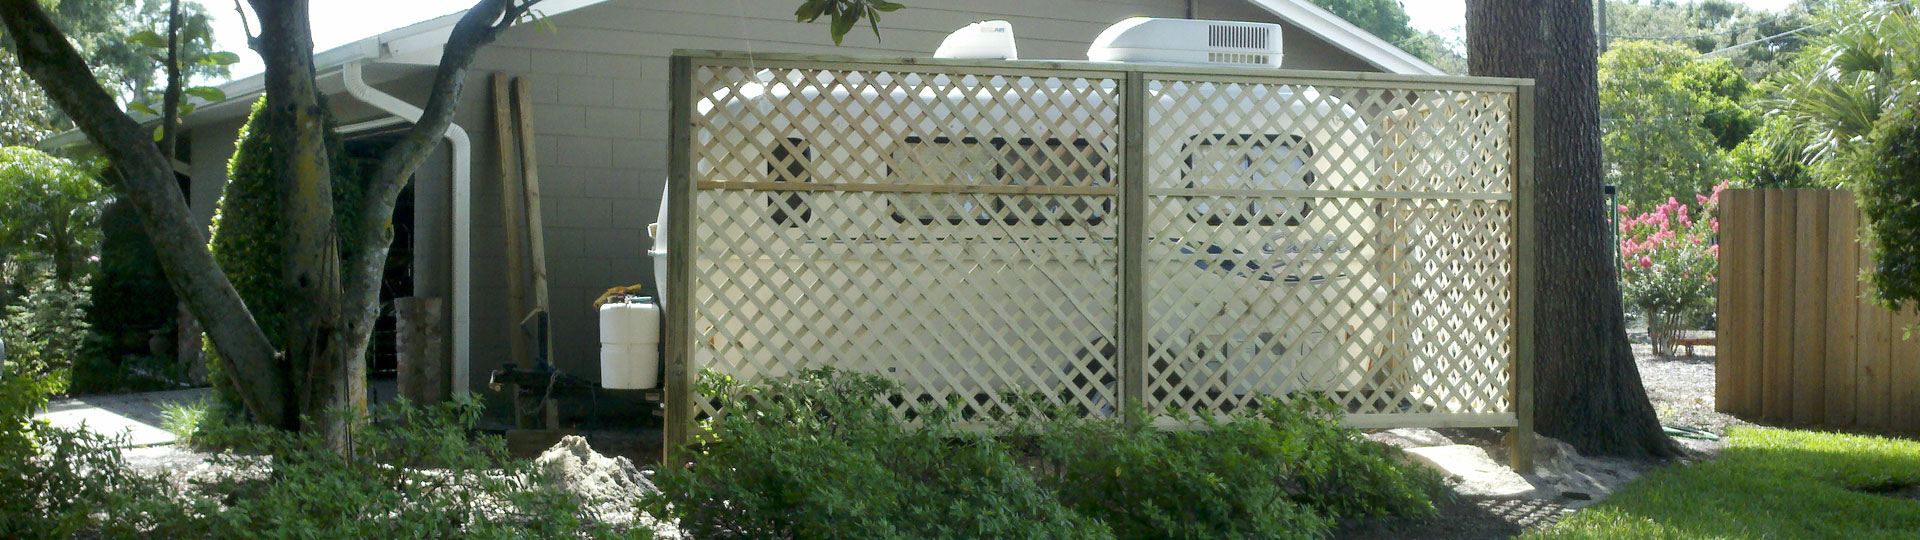 Small travel trailer stored at home